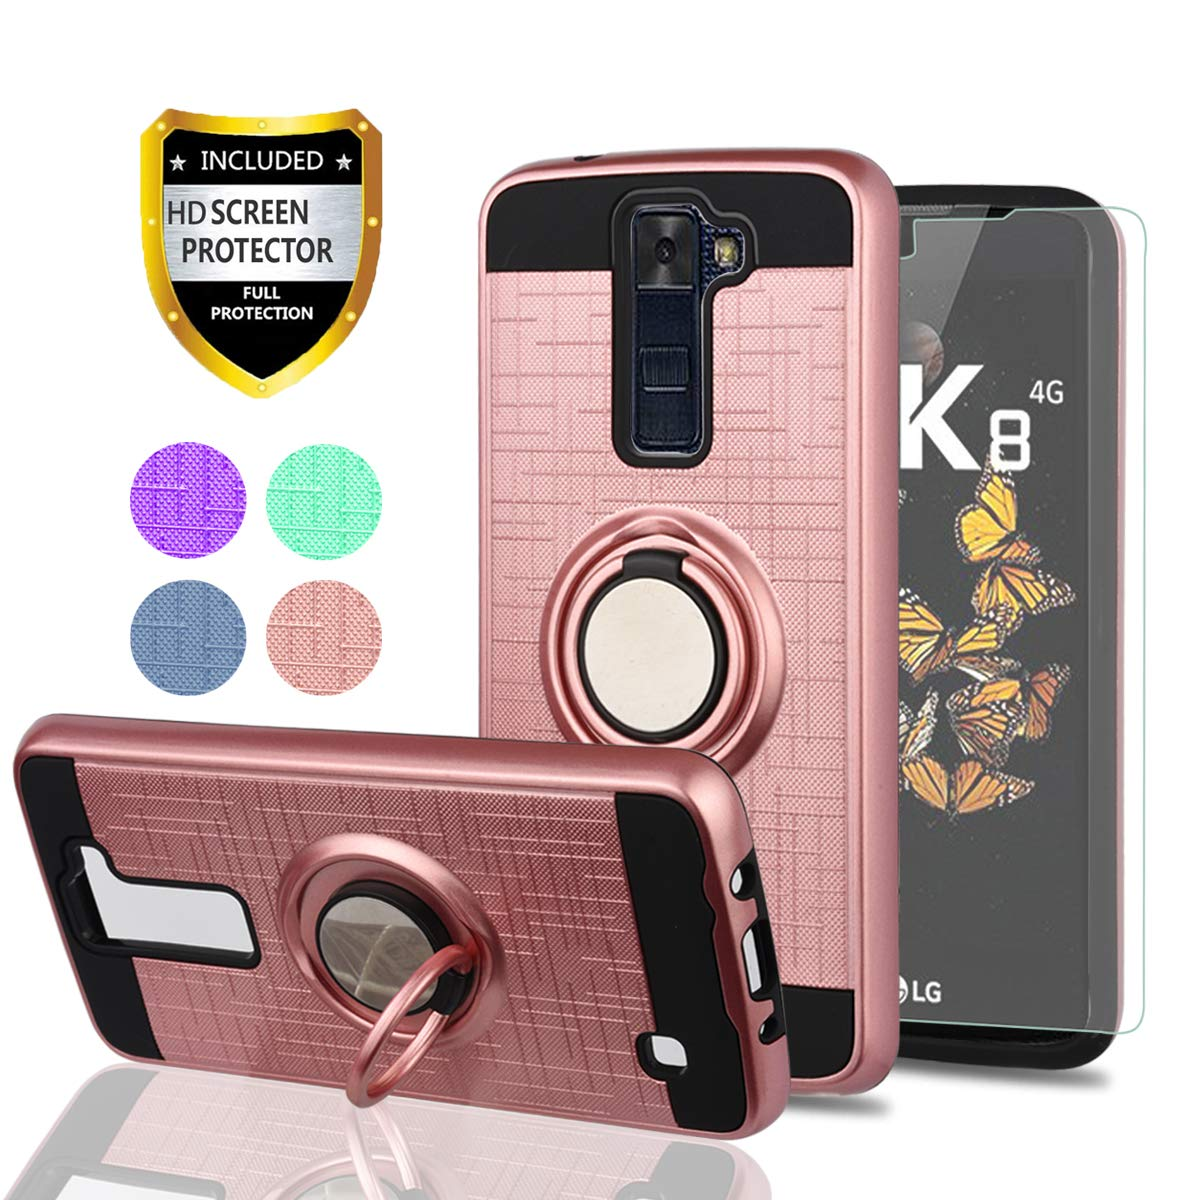 LG Phoenix 2 Case, LG Escape 3 Phone Cases with HD Phone Screen Protector,YmhxcY 360 Degree Rotating Ring & Bracket Dual Layer Resistant Back Cover for LG K8 2016-ZH Rose Gold